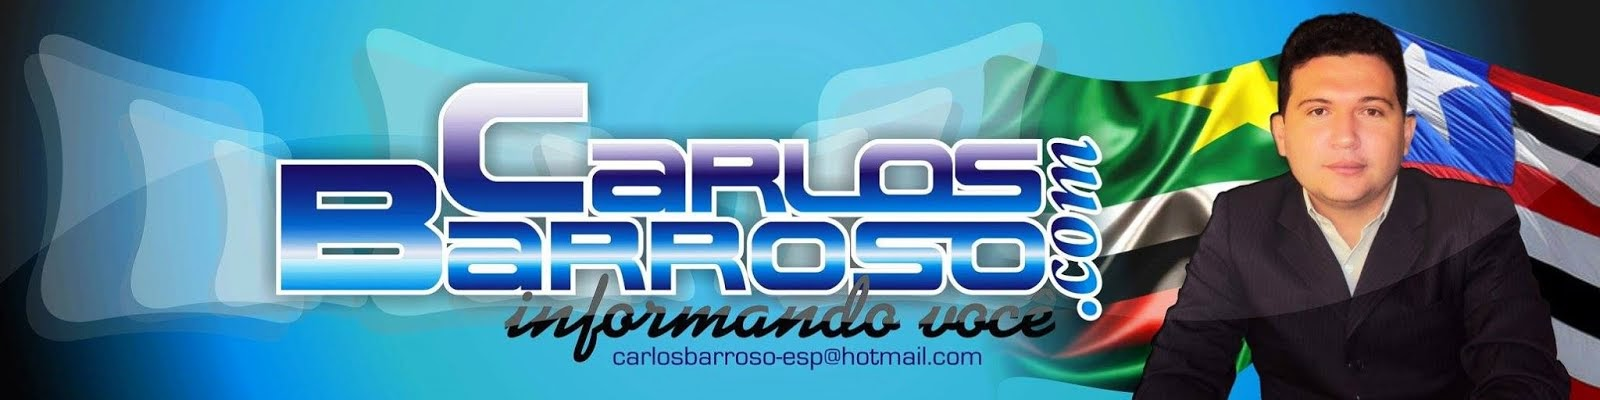 Blog do Carlos Barroso